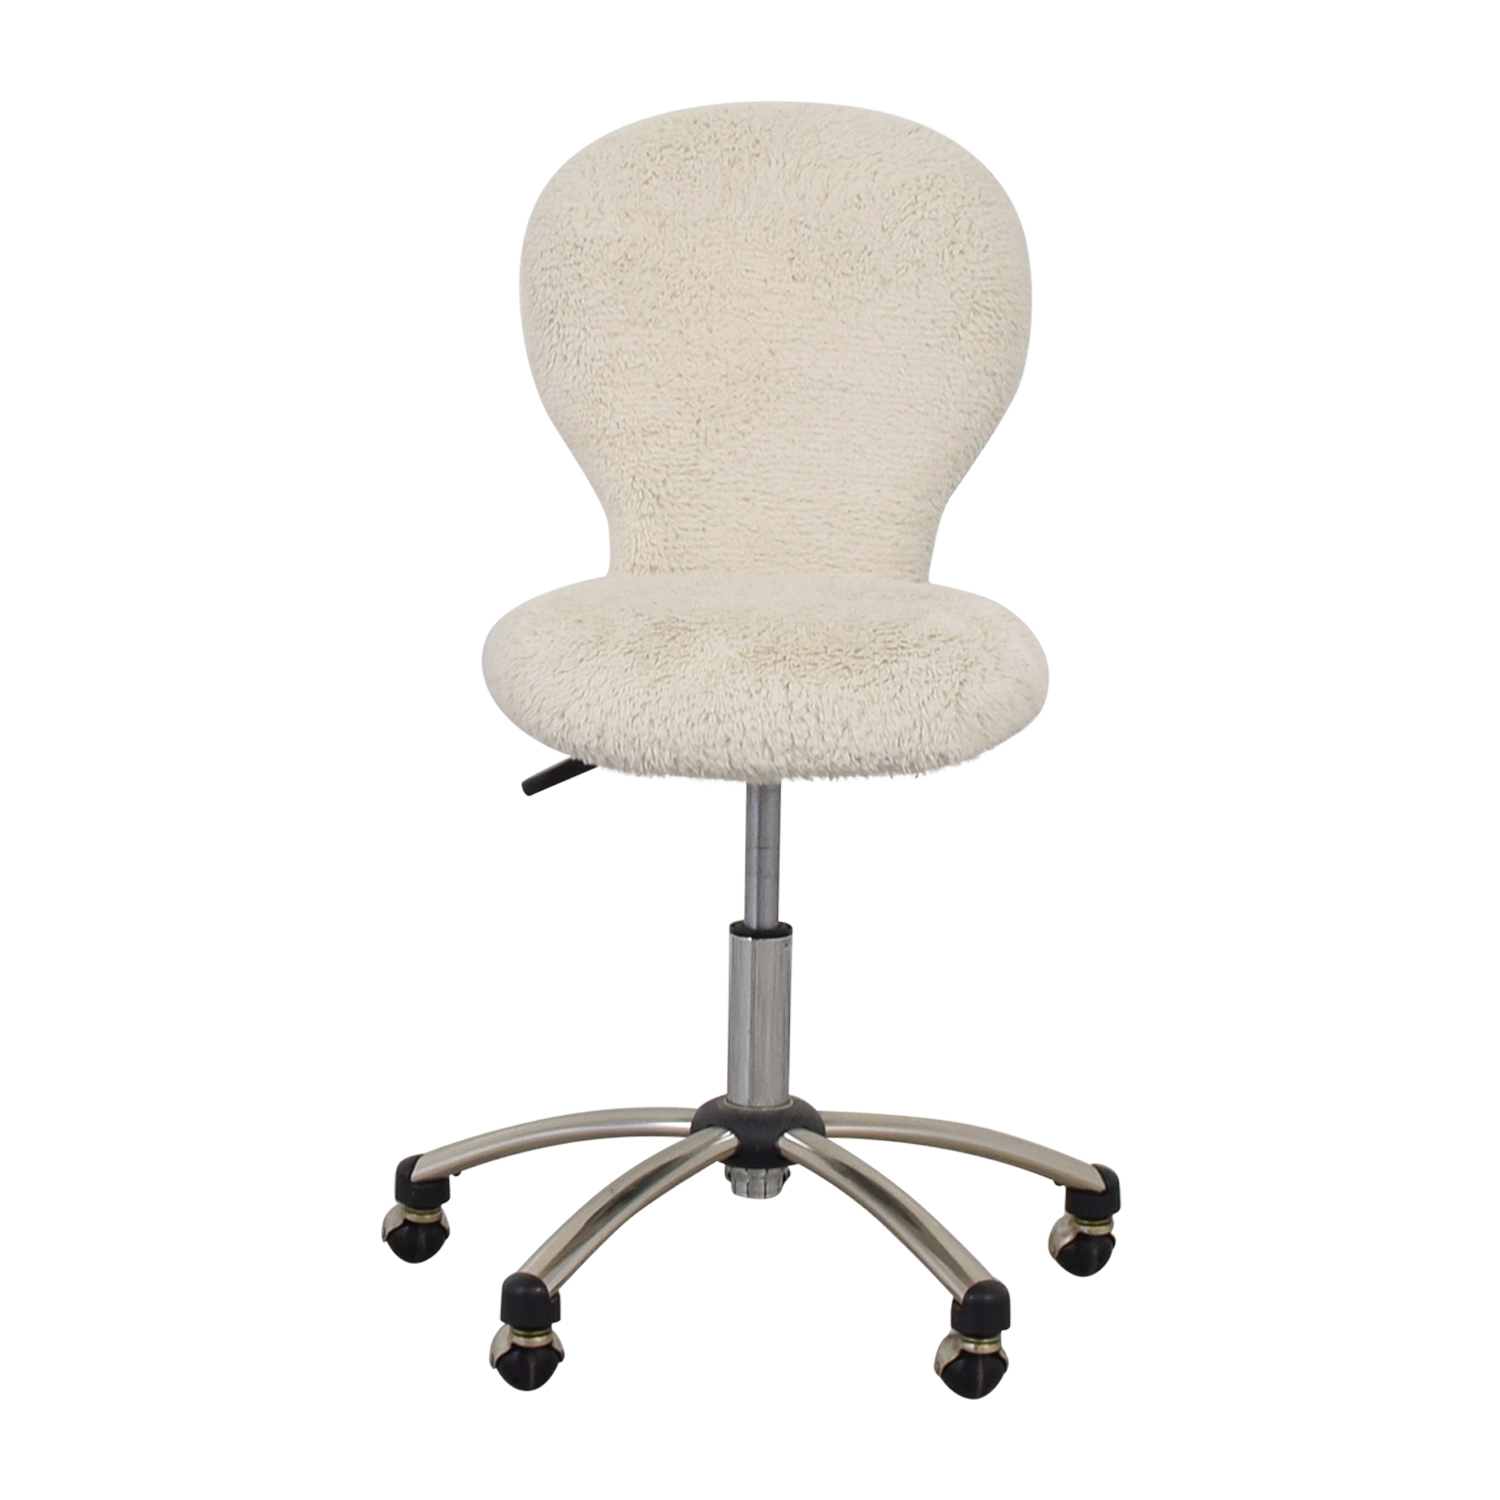 buy Pottery Barn White Fleece Covered Desk Chair Pottery Barn Chairs